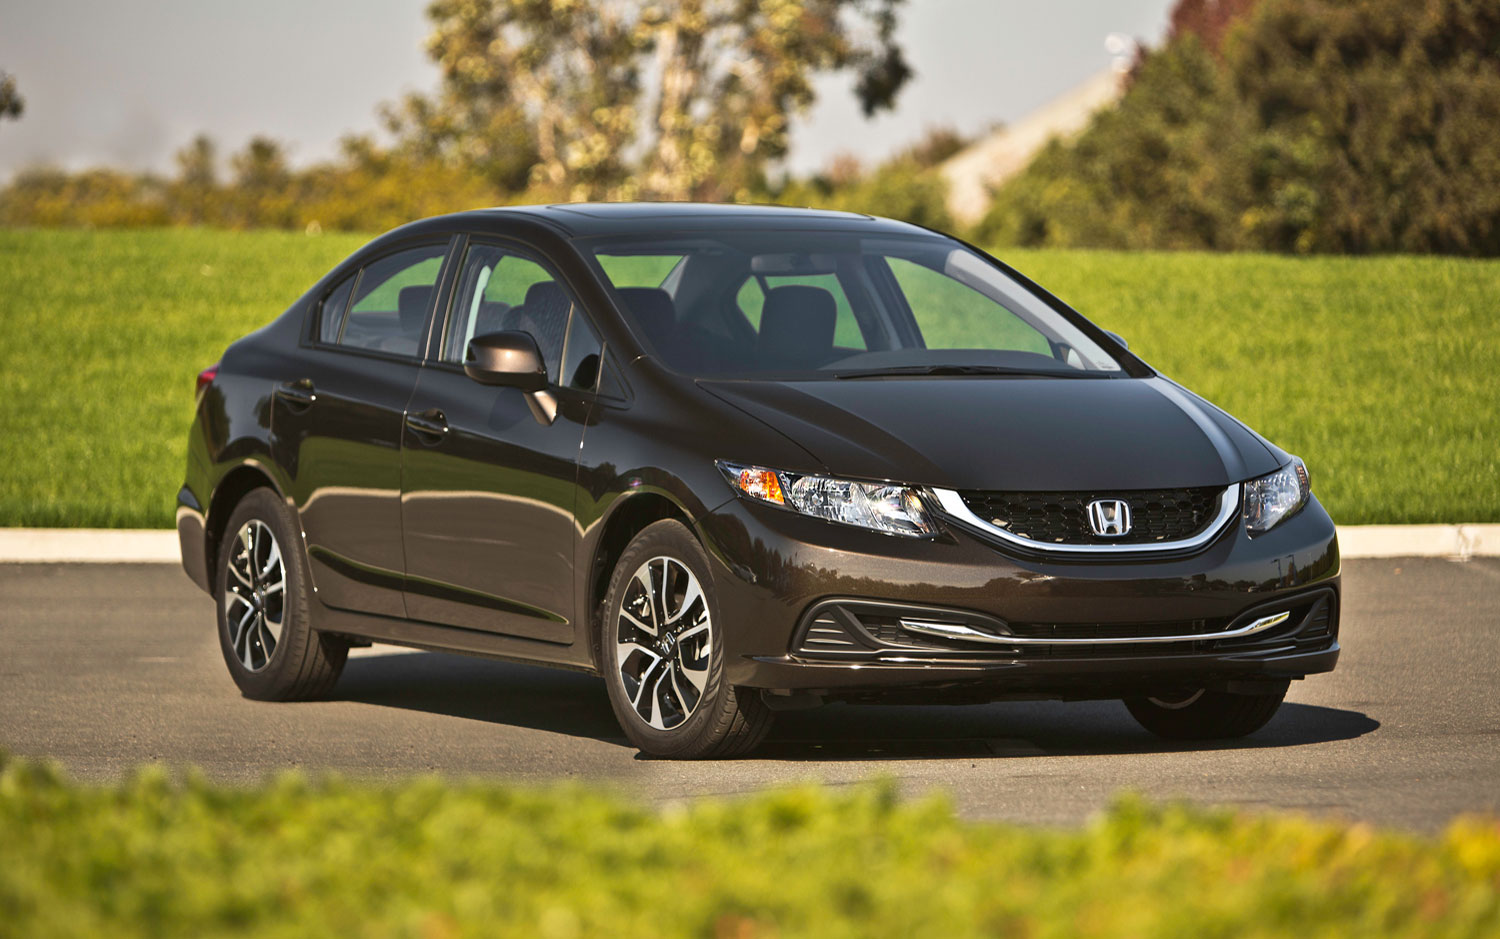 Image Result For Honda Civic Interior Colors